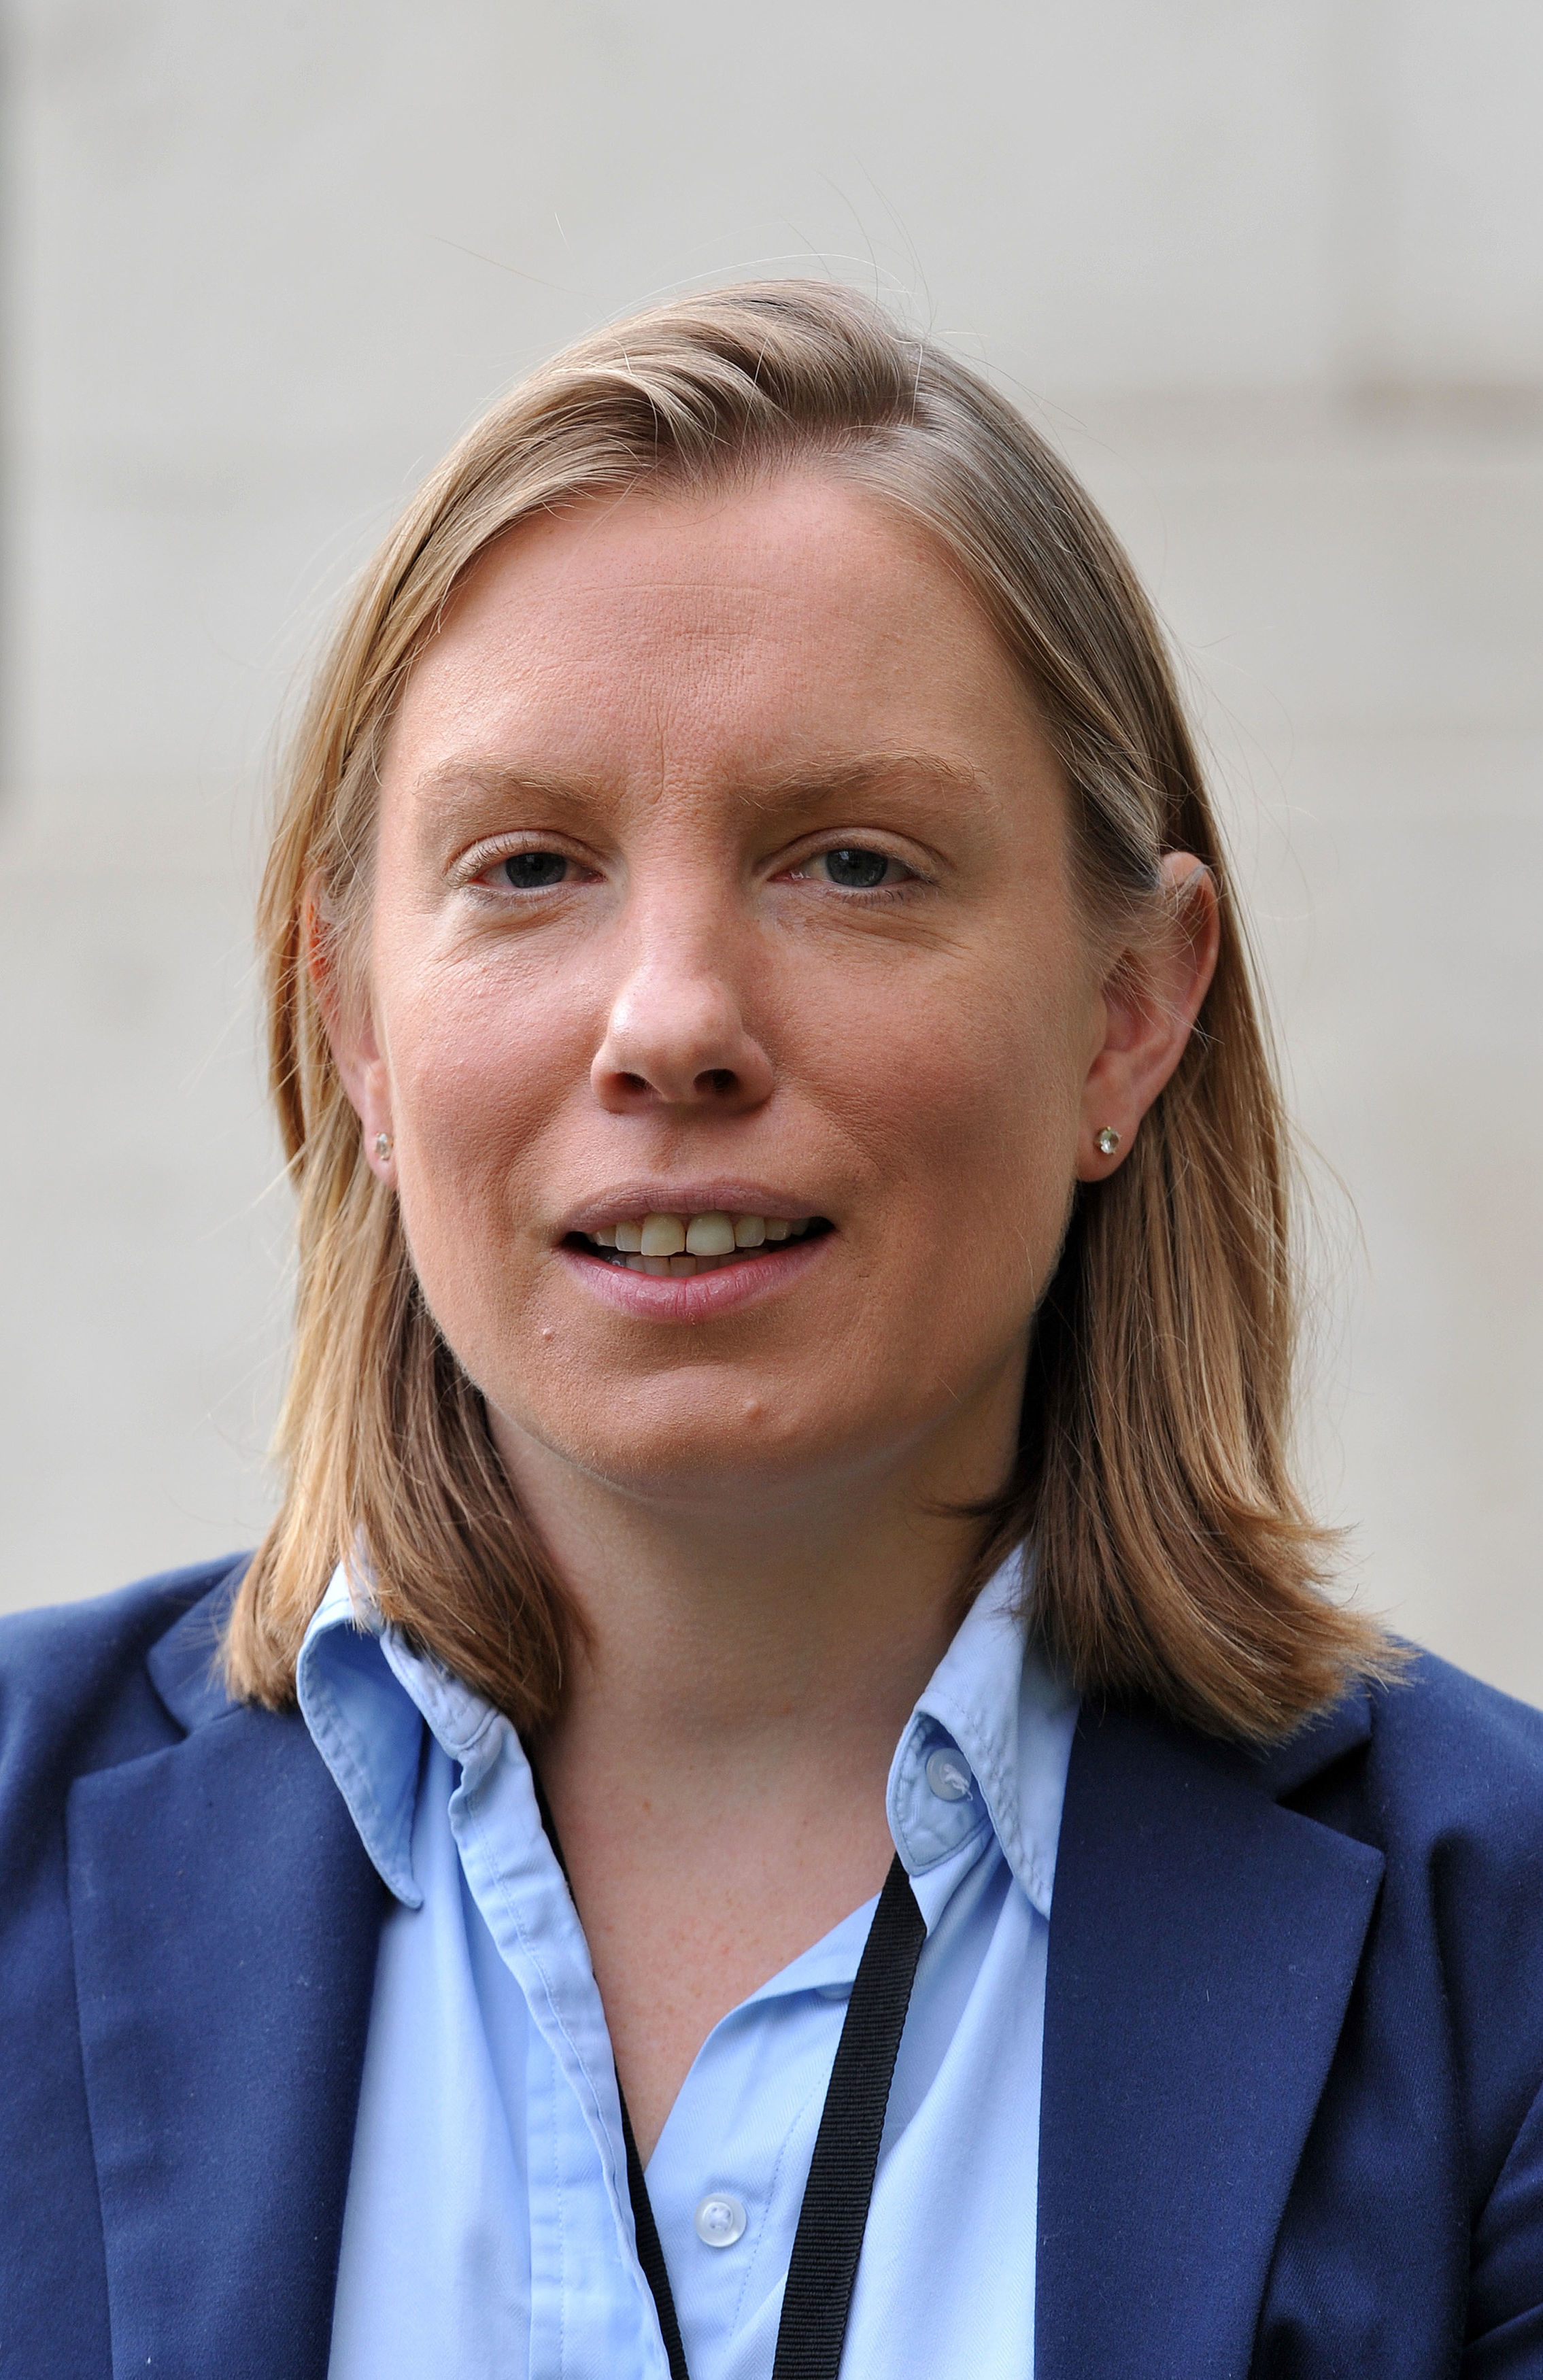 Tracey Crouch, who has resigned as sports and civil society minister amid a row over delays in cutting the maximum stake for fixed-odds betting terminals